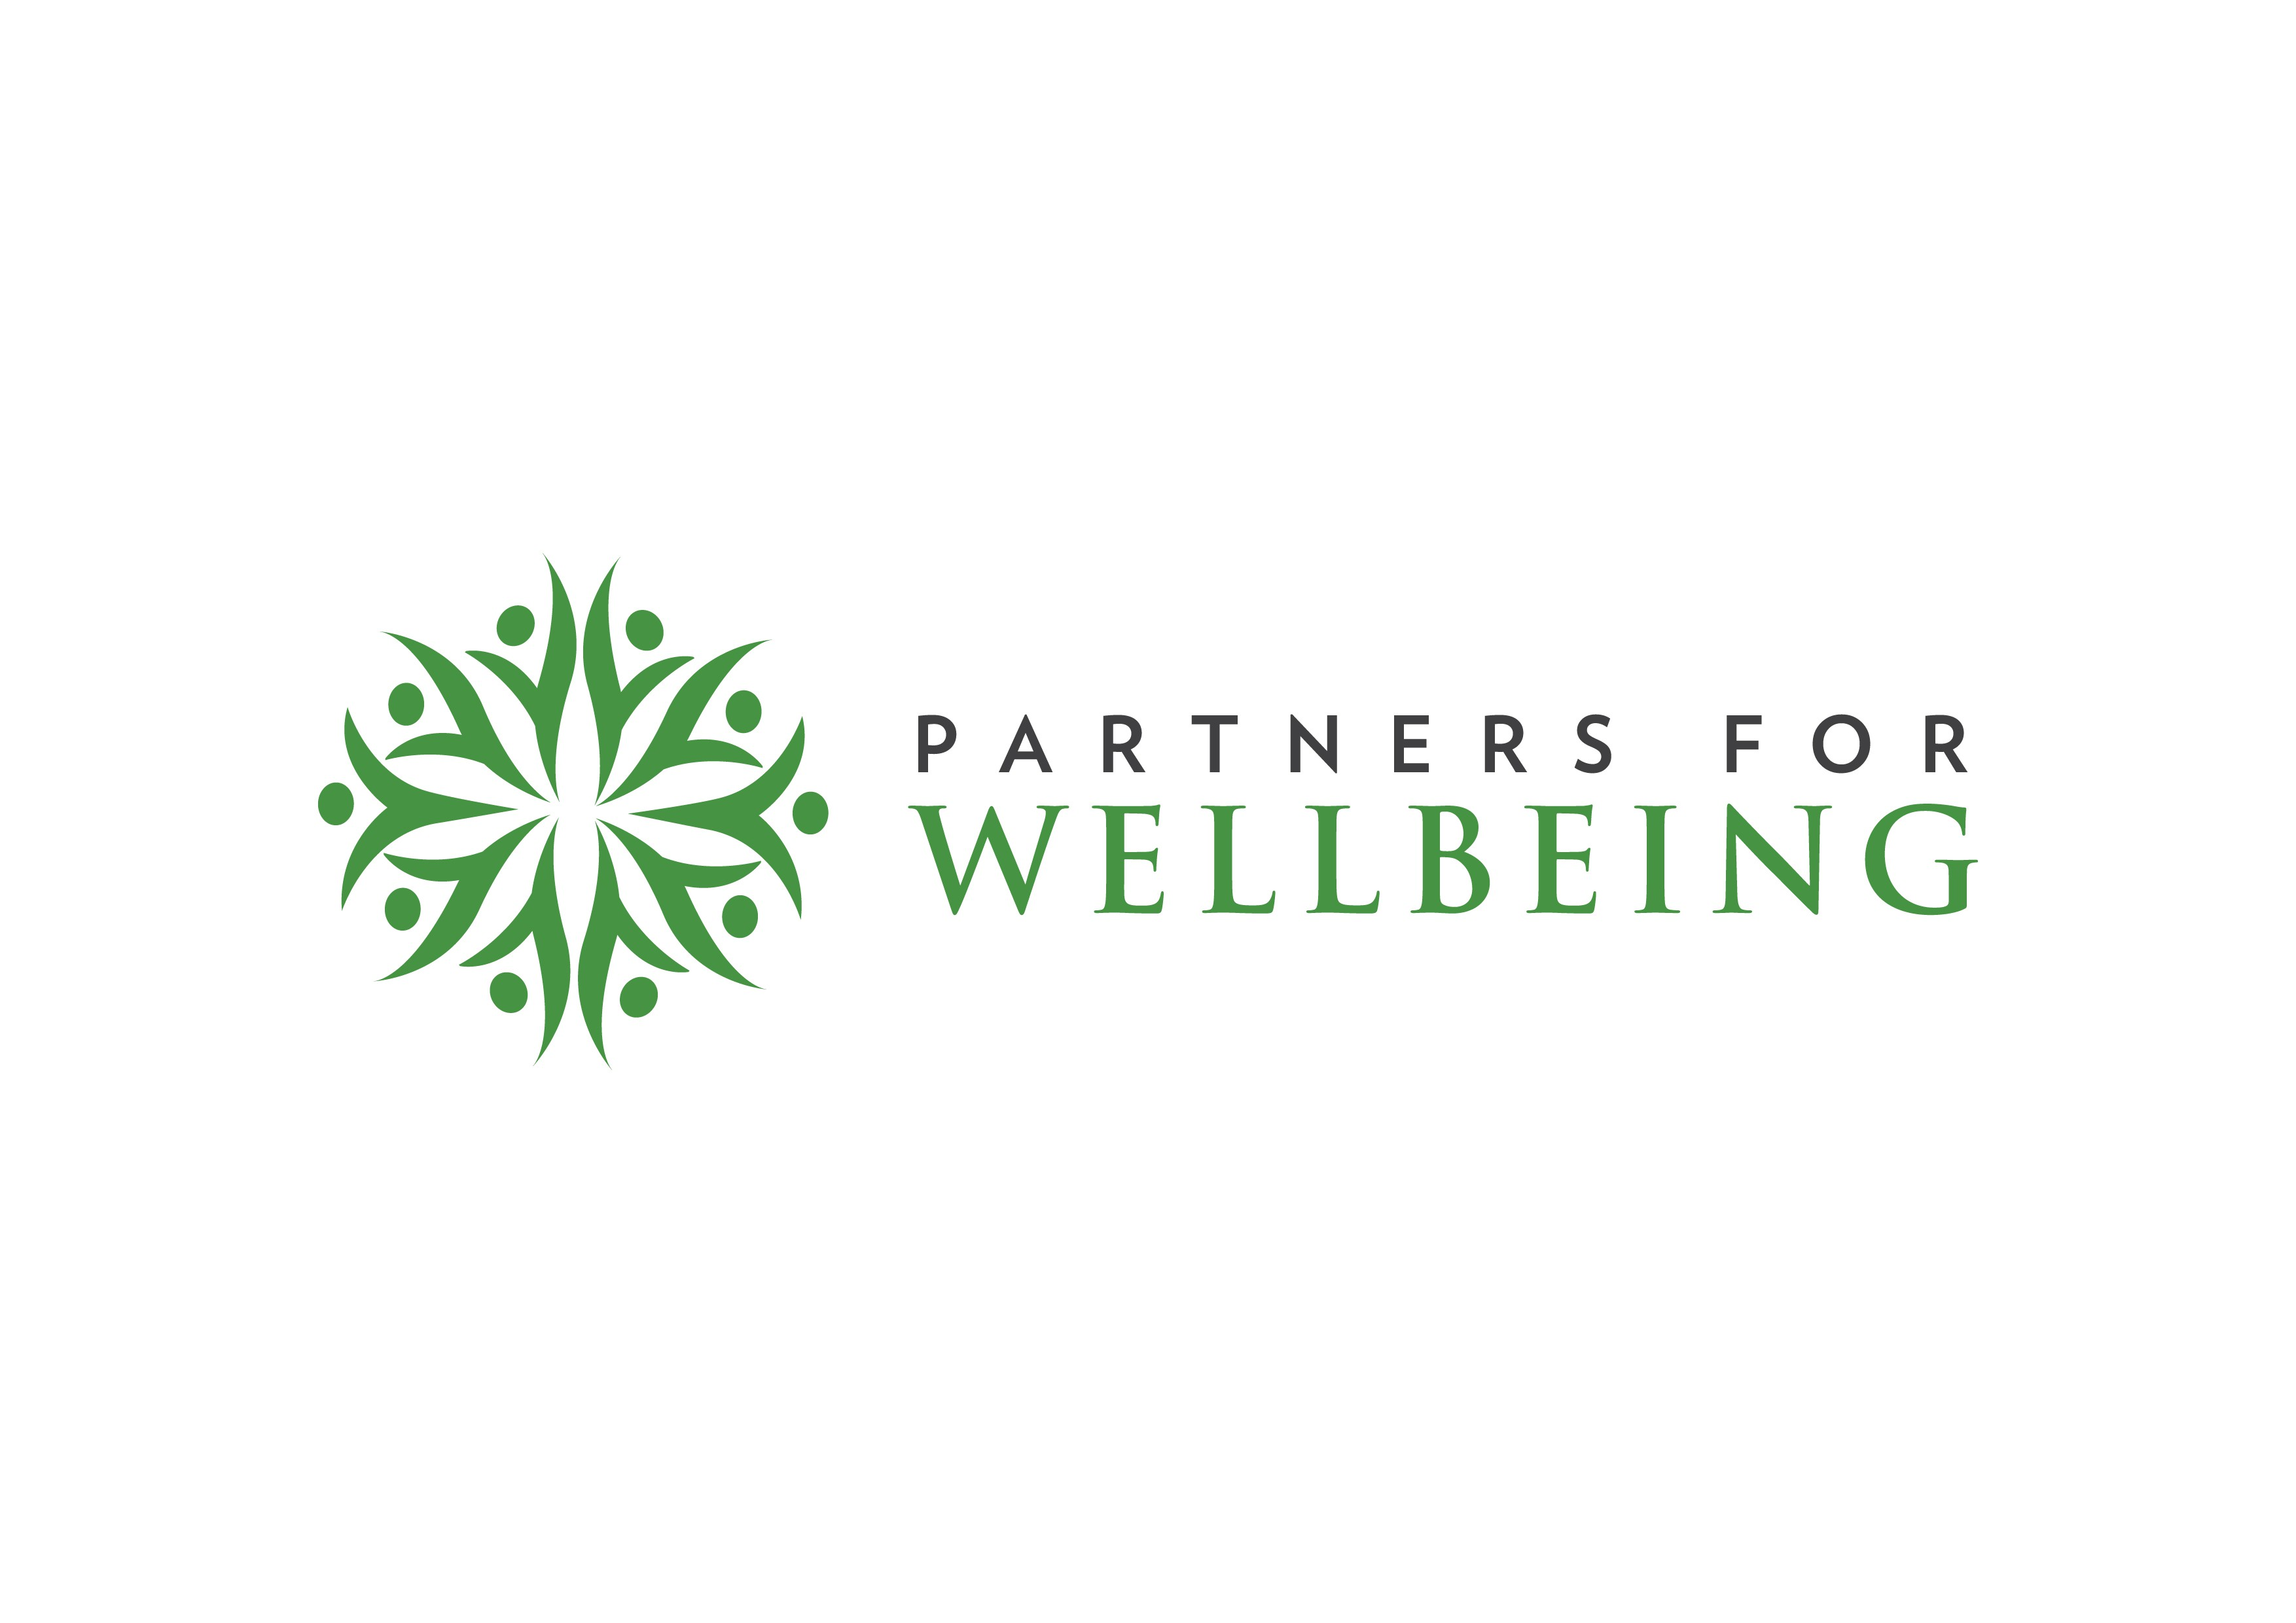 Create an impactful logo for a young start-up promoting greater wellbeing